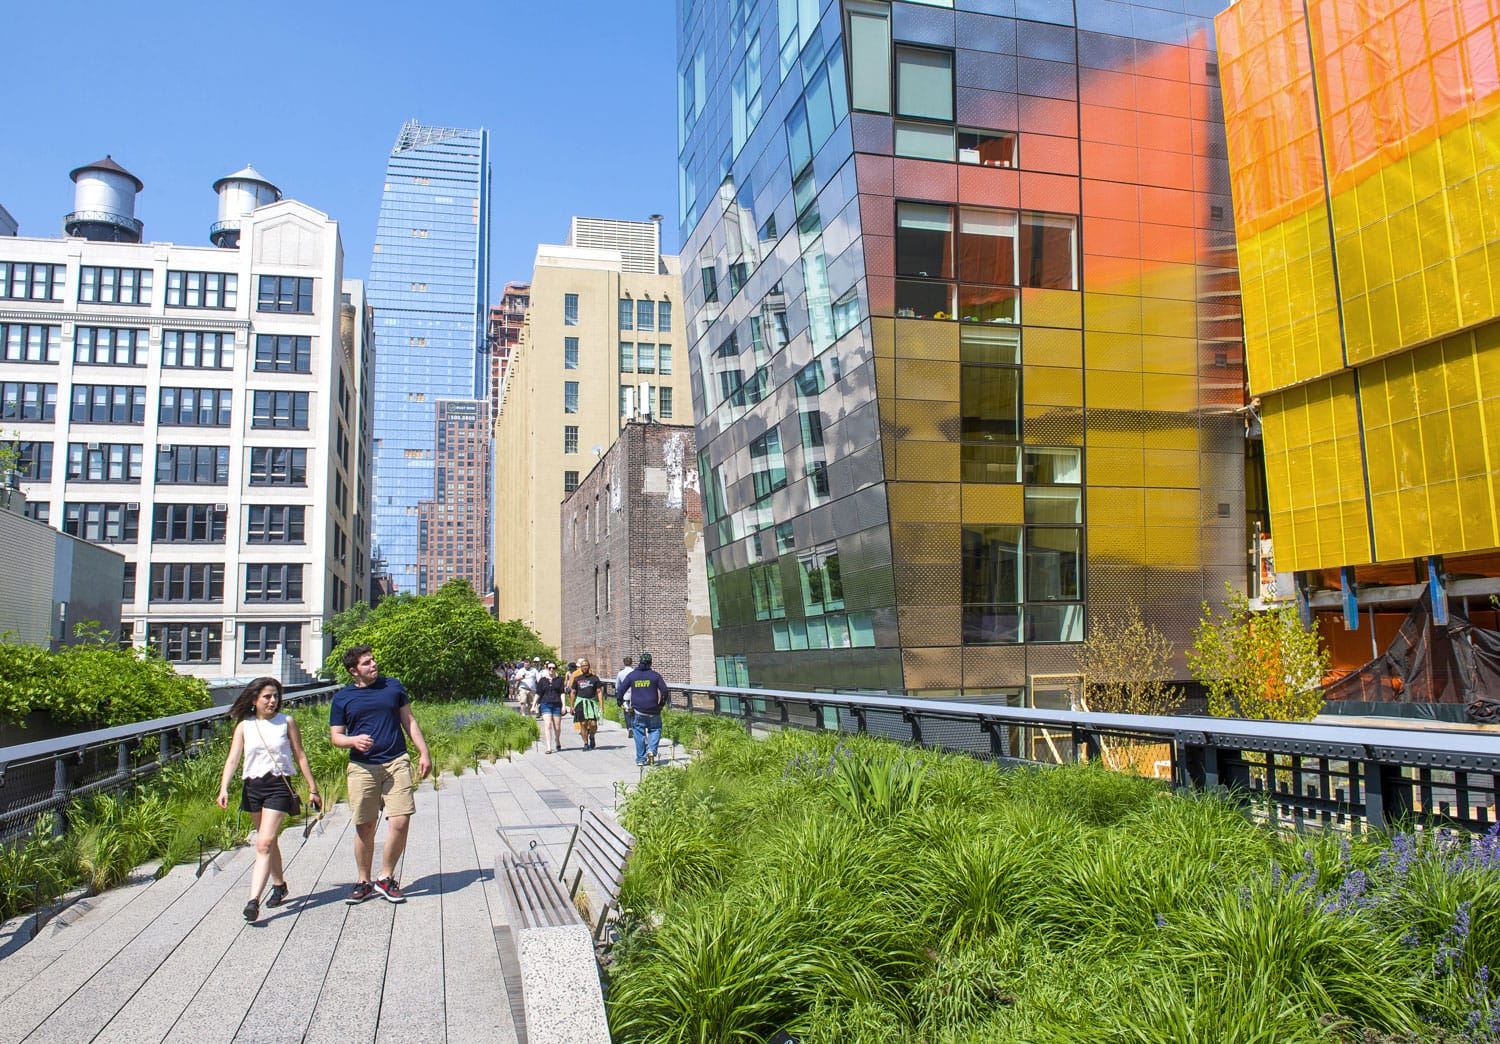 The High Line Park in NYC